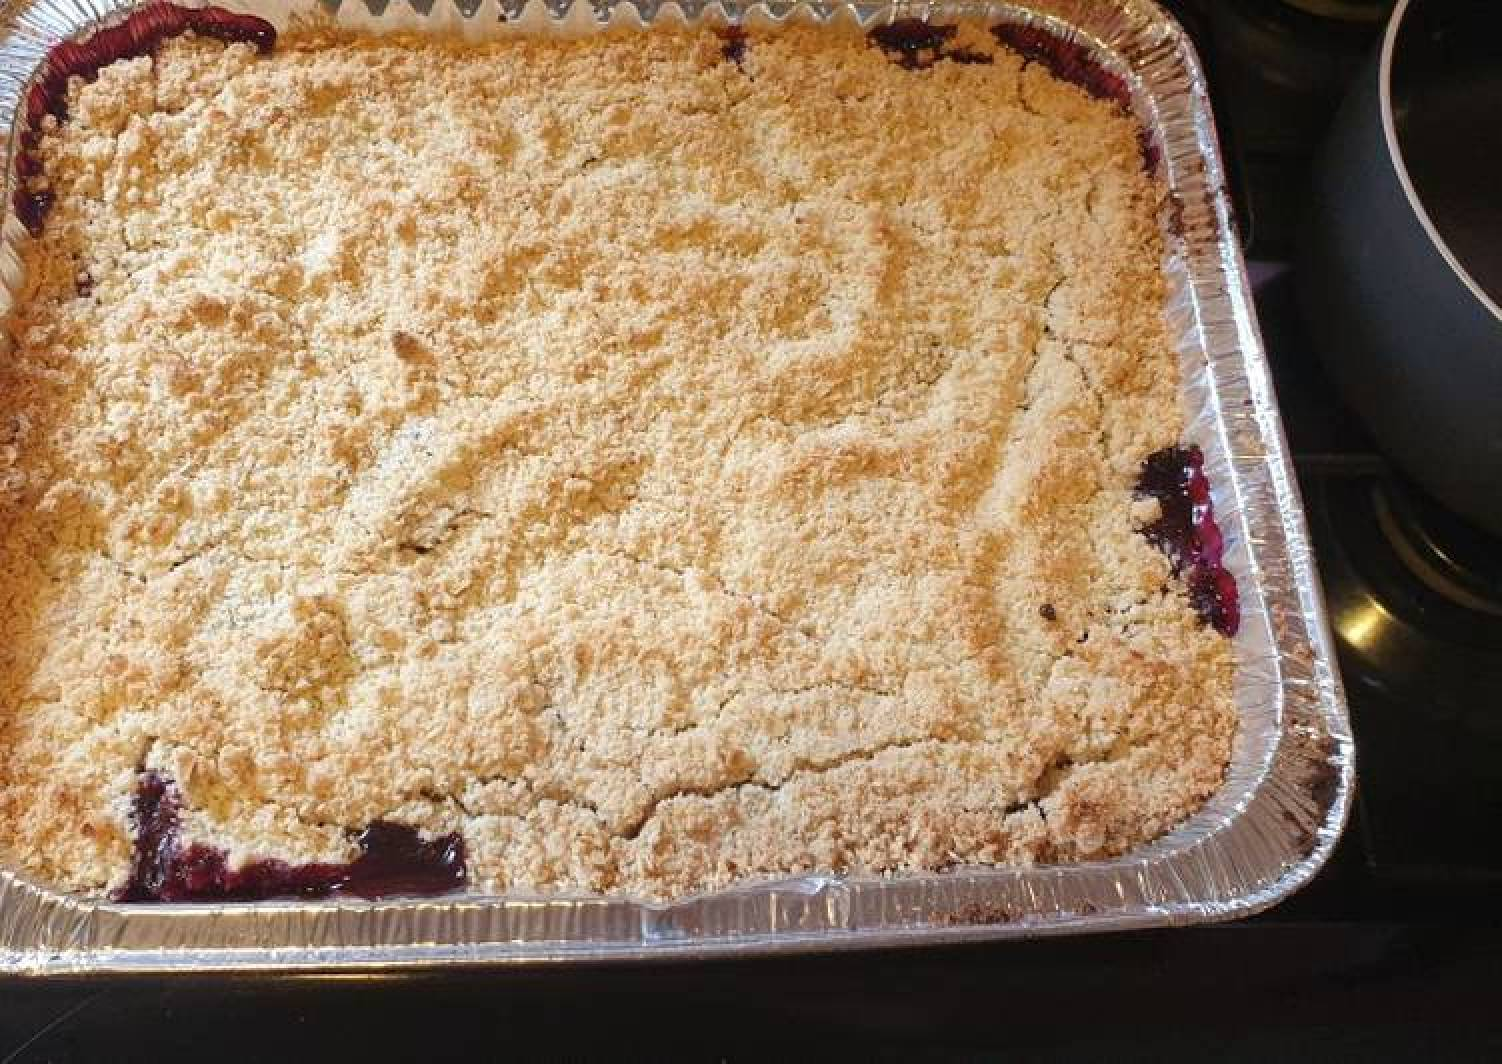 Blackberry and apple 🍎 crumble